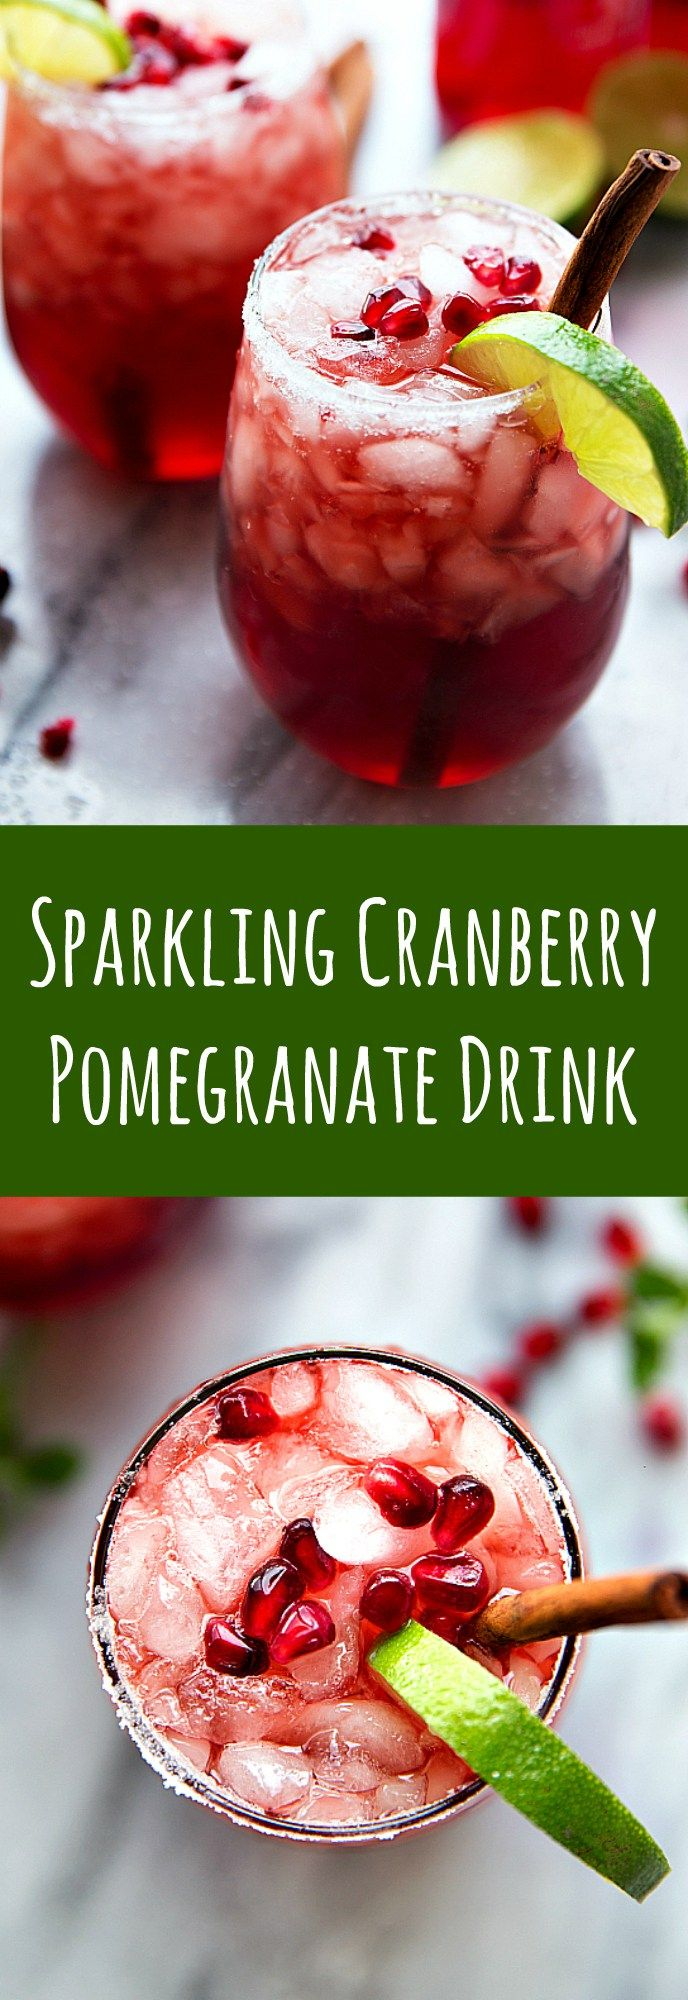 A non-alcoholic sparkling cranberry lime & pomegranate beverage -- perfect for holiday entertaining! #ad